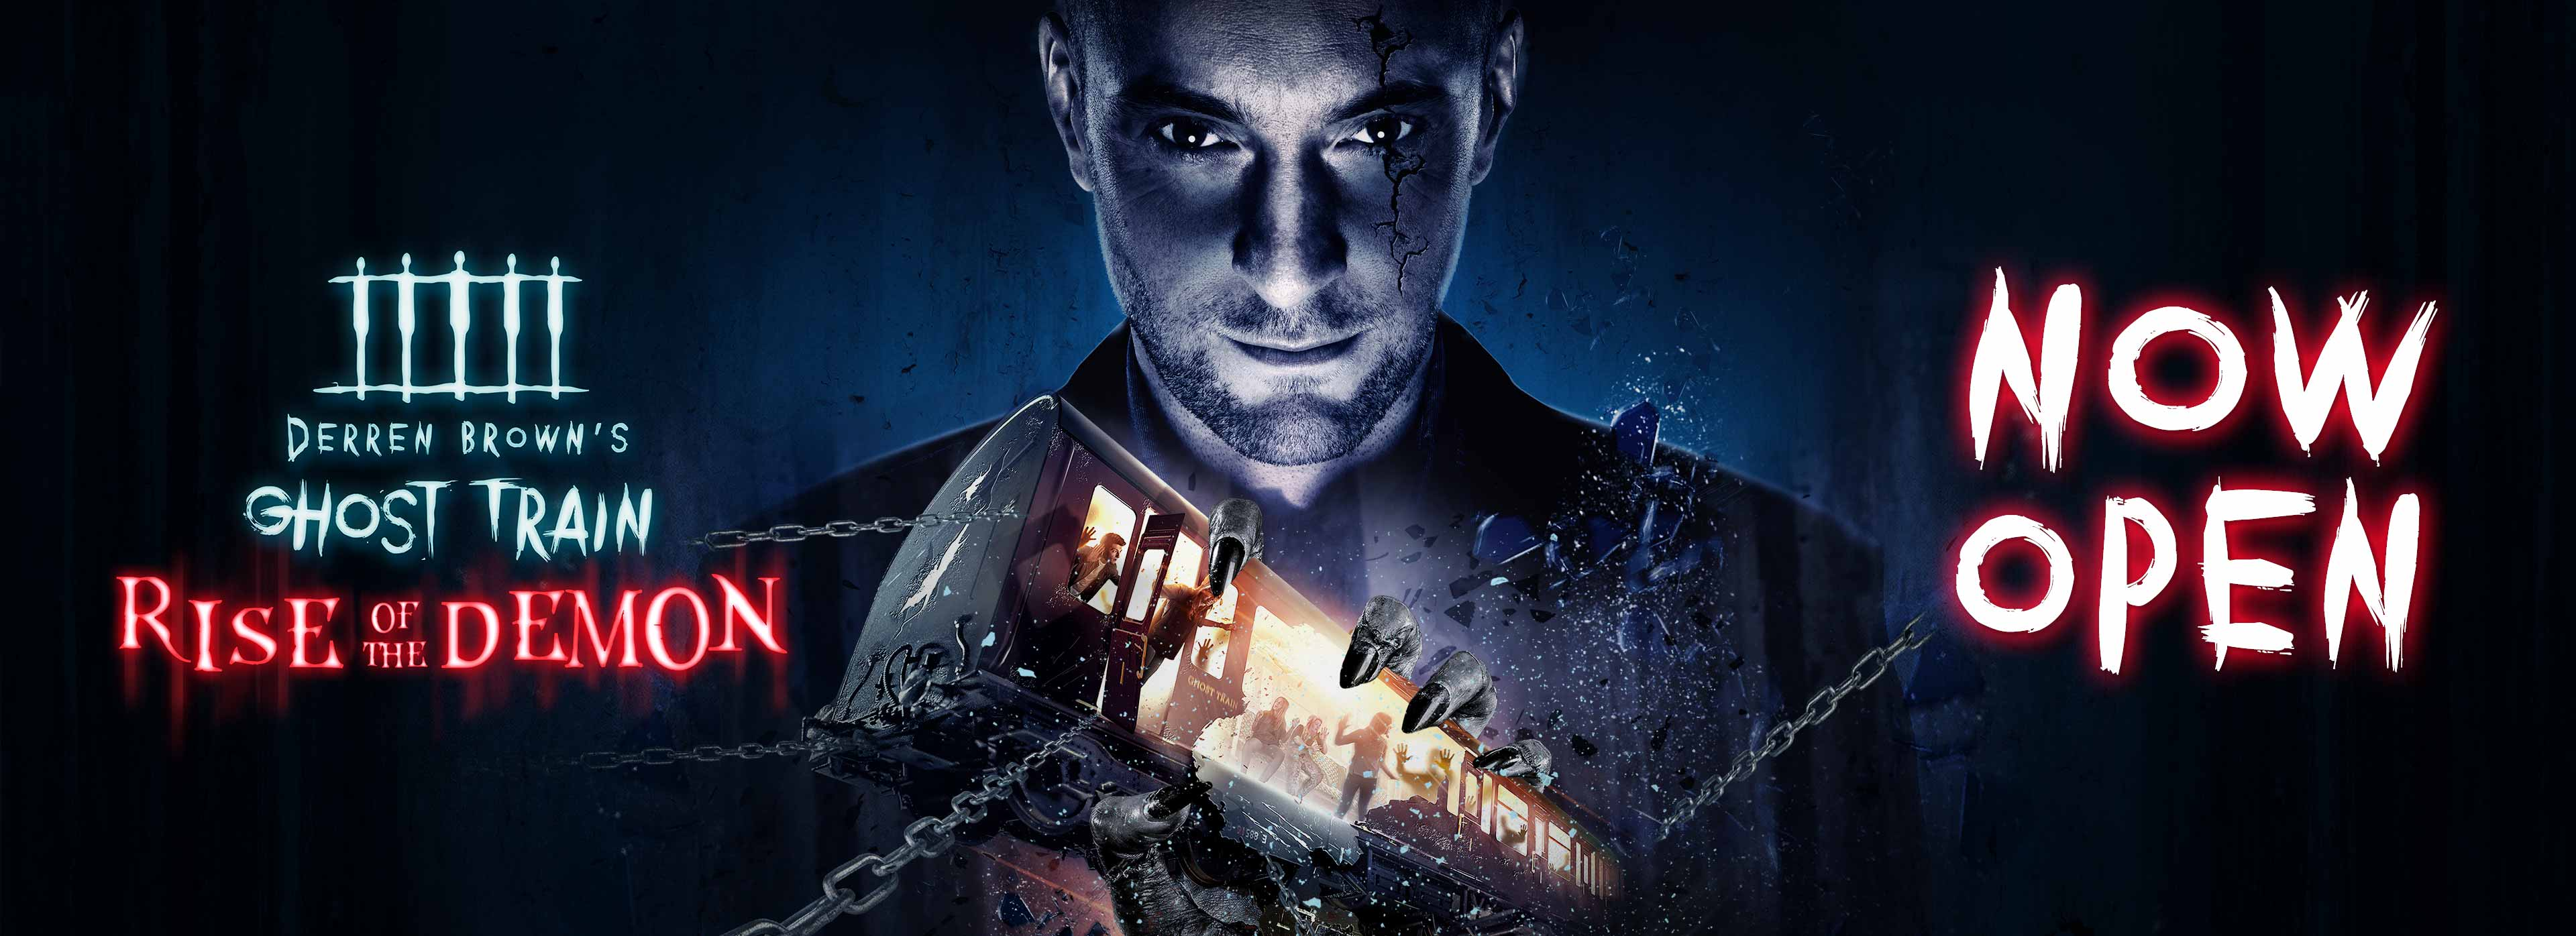 Derren Brown's Ghost Train: Rise of the Demon